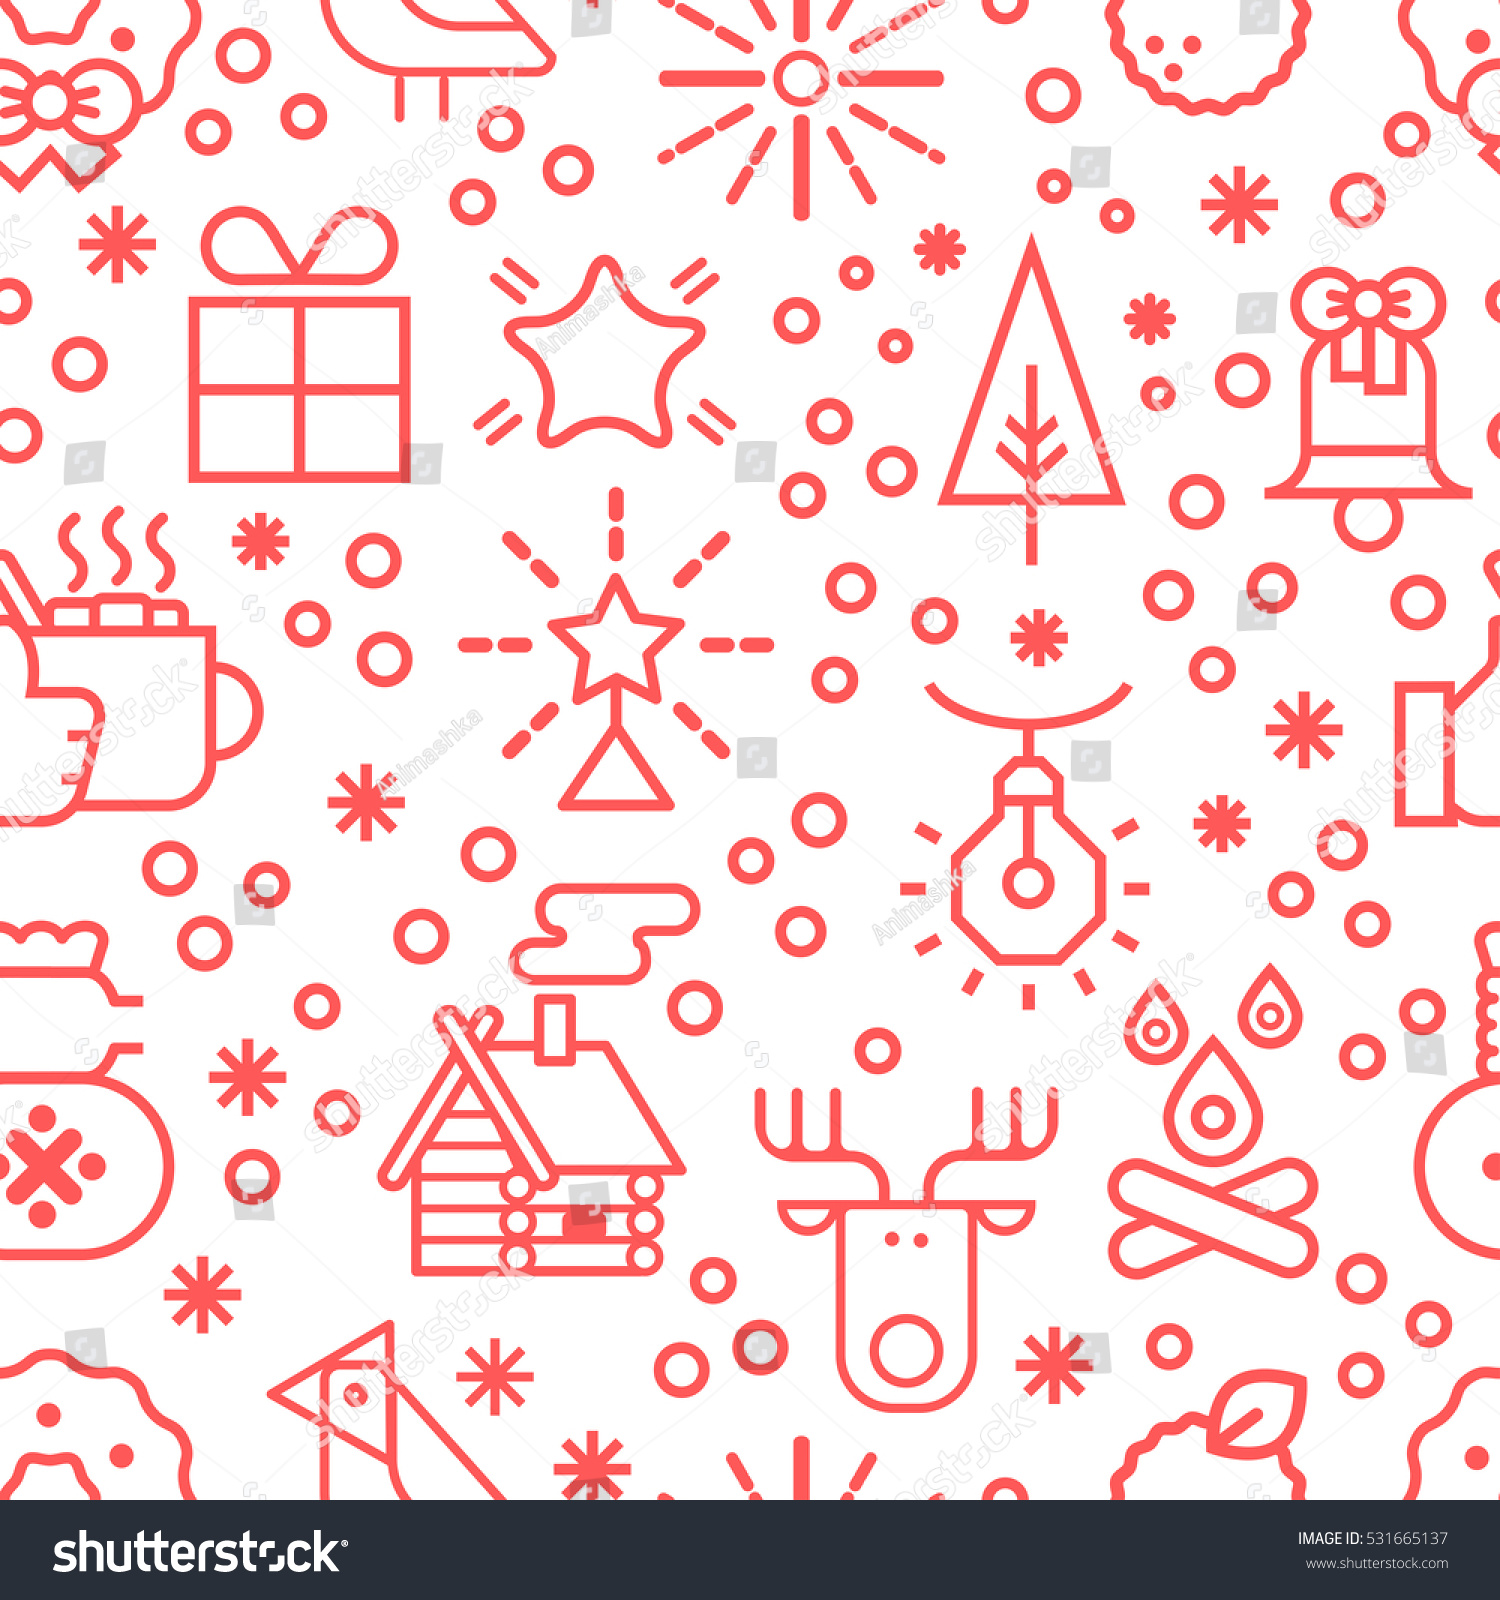 essays about new year celebration Find information on christmas essays, essays on christmas, christmas day essays, christmas essay last year, i went down very christmas to me is a celebration, which includes spending time with my family.